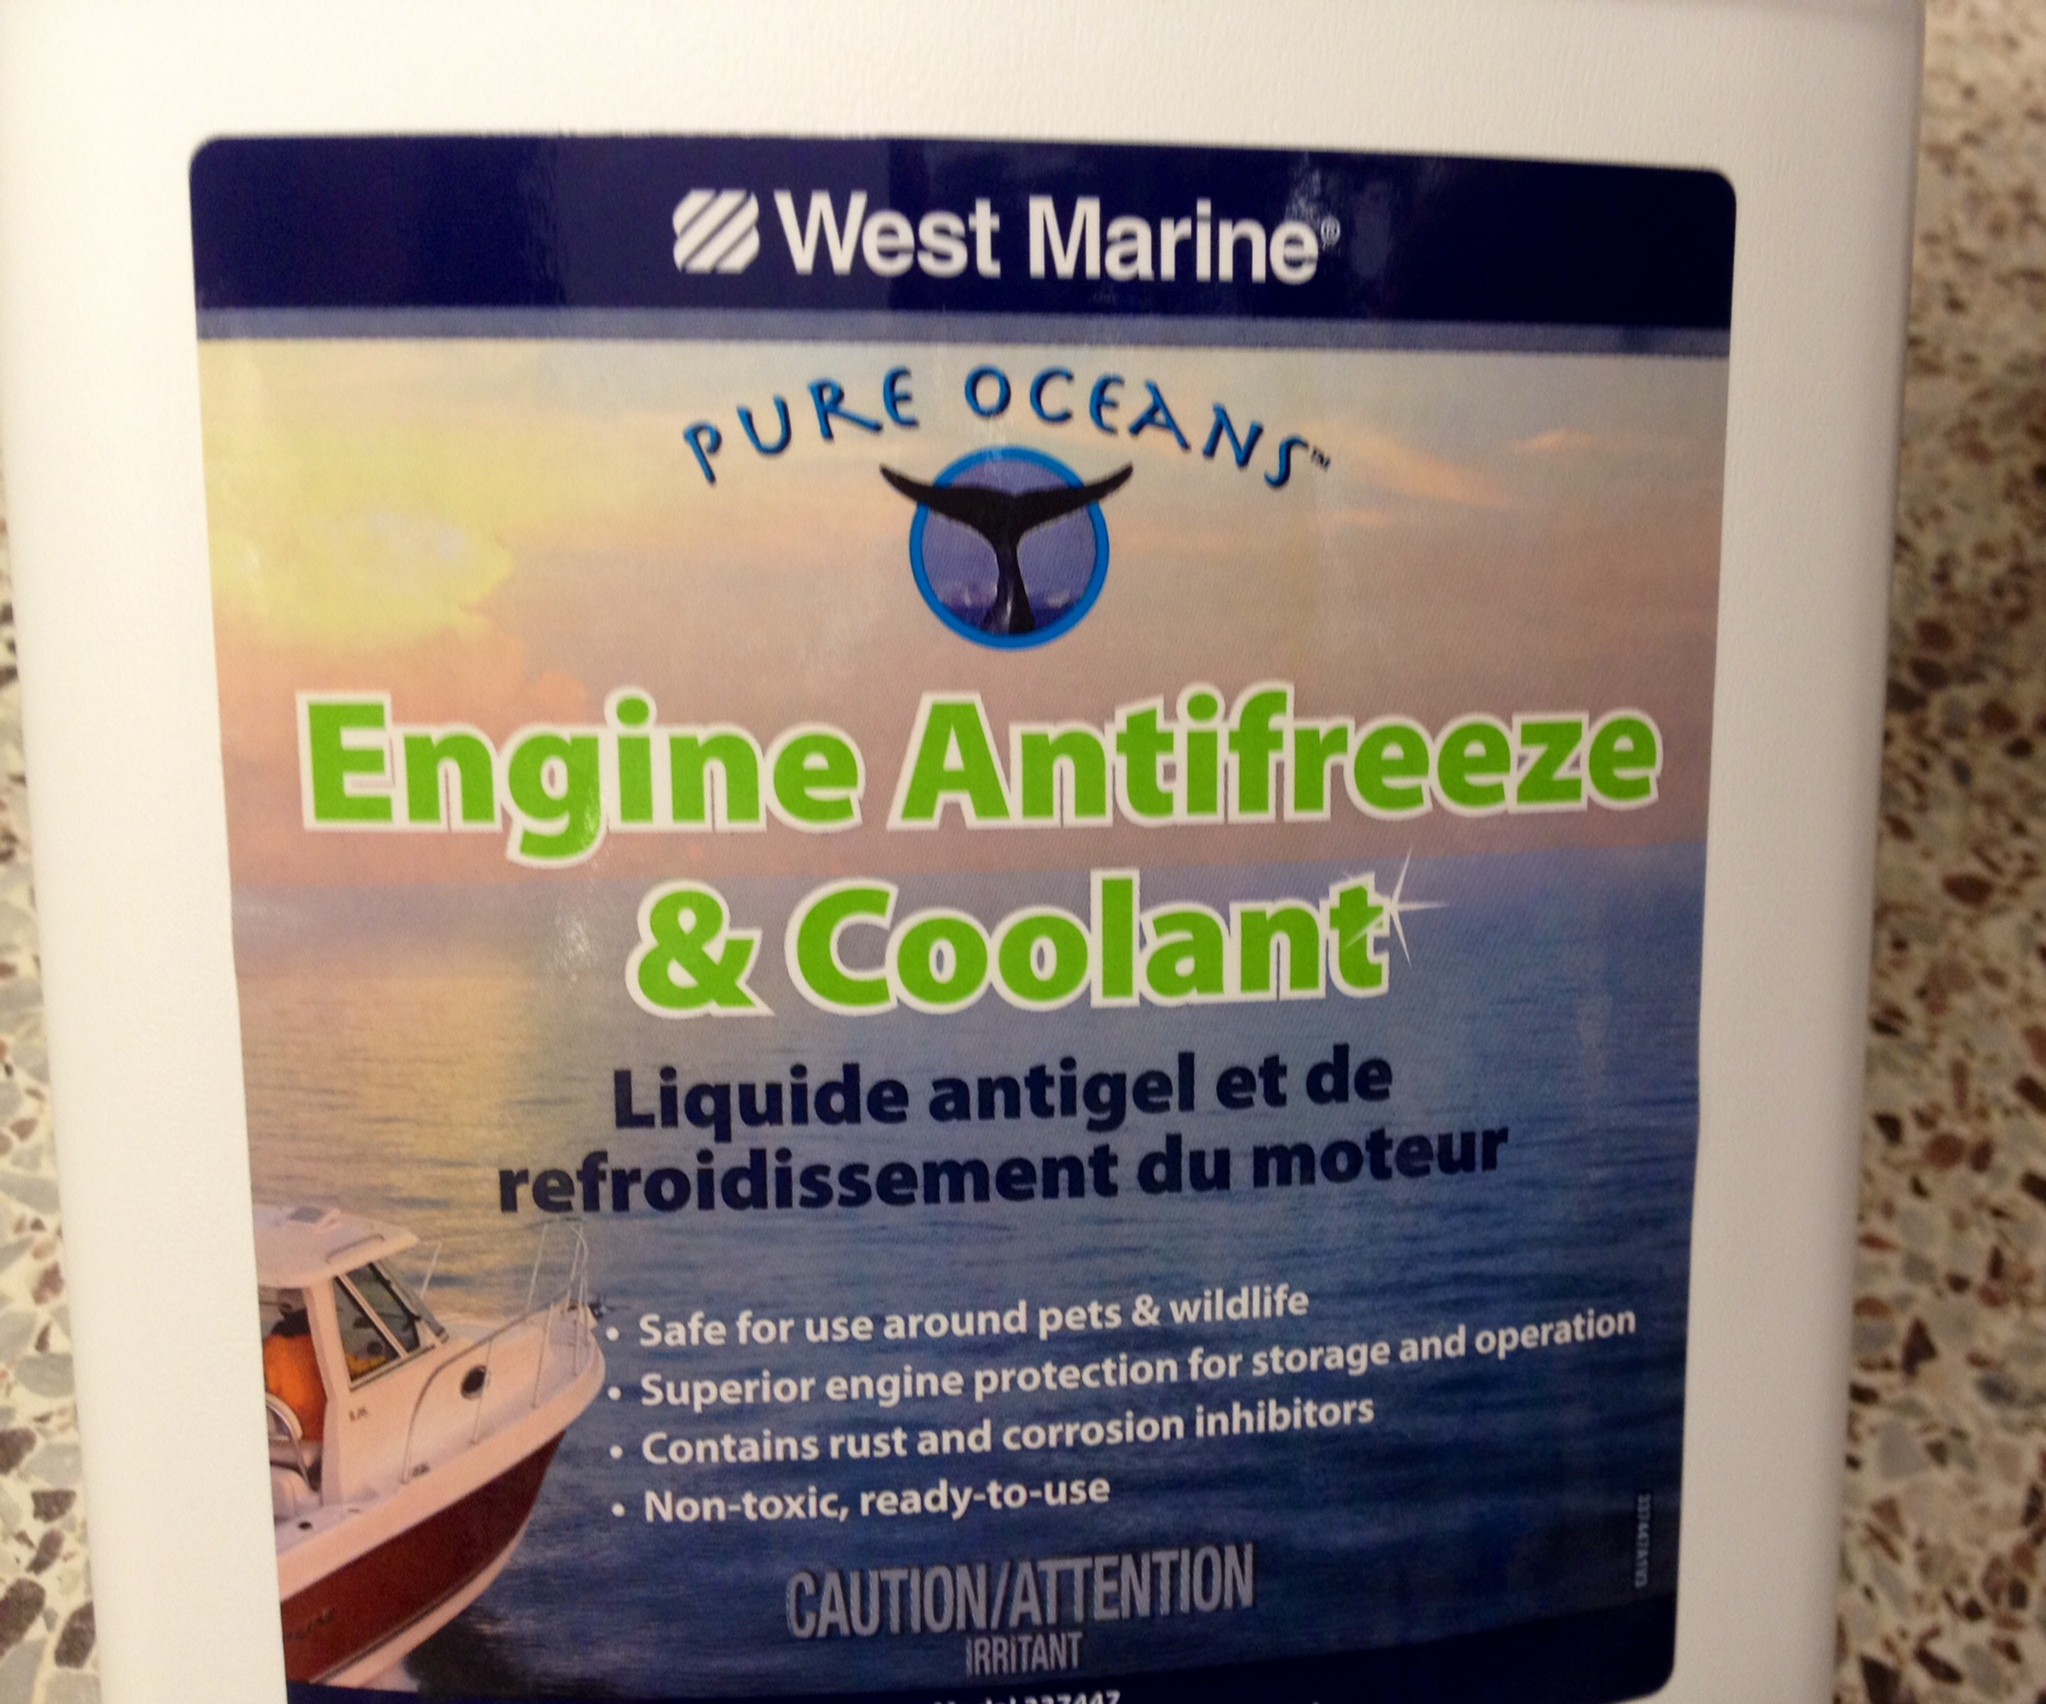 //www.gameandfishmag.com/files/winterizing-a-boat/step-6-add-antifreeze.jpg